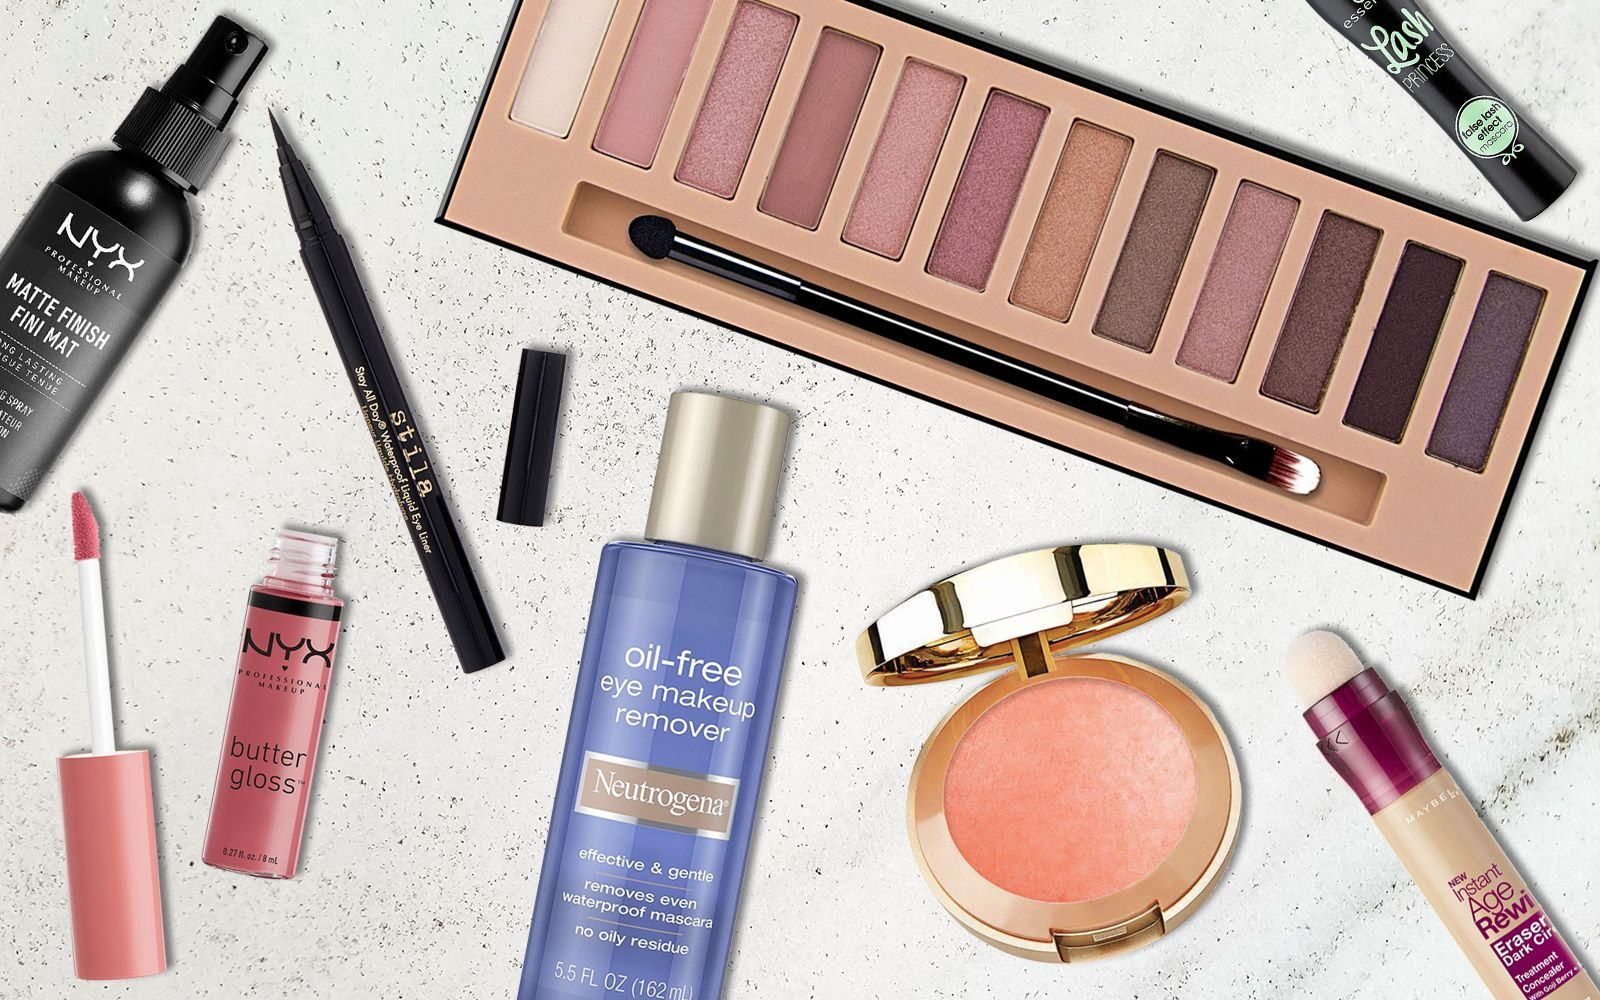 This Is the Best Makeup You Can Buy on Amazon, According